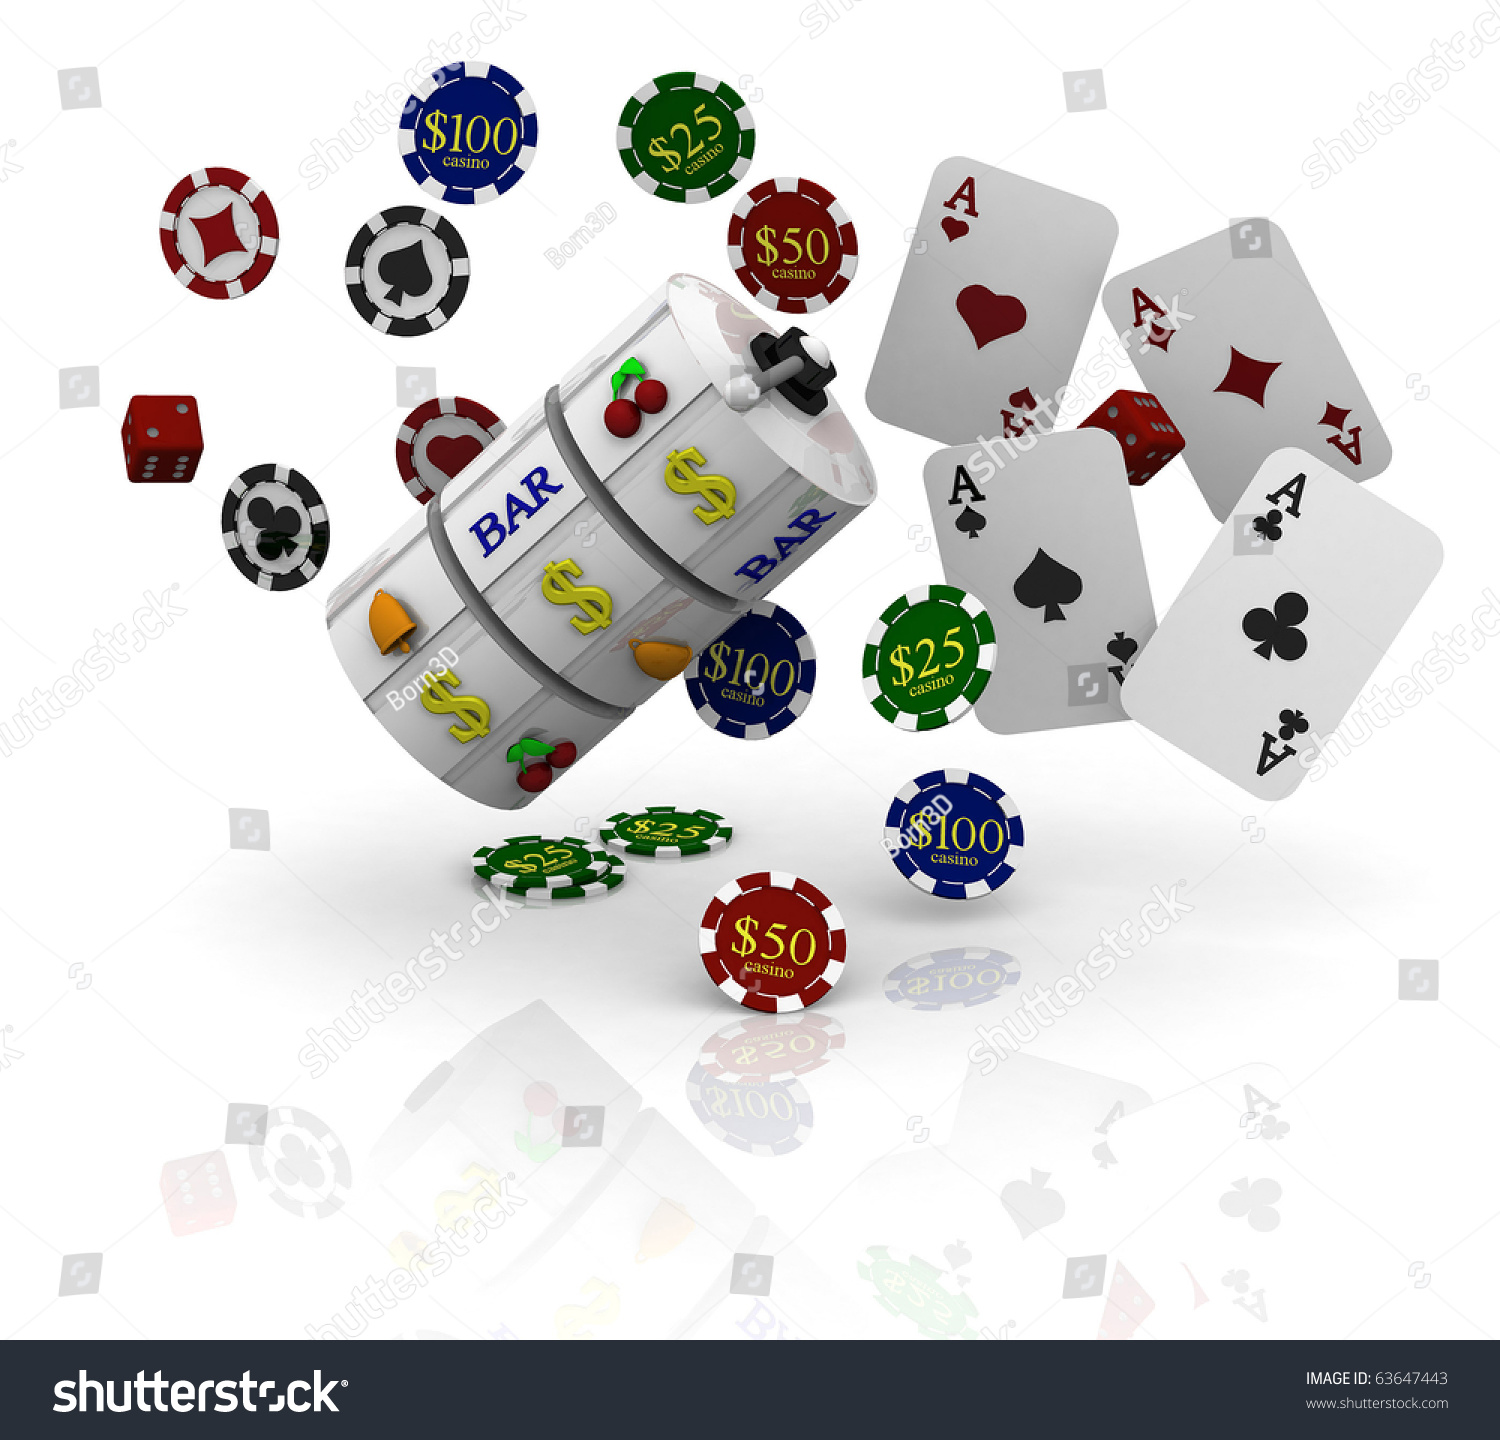 3d casino objects for games casino games online blackjack